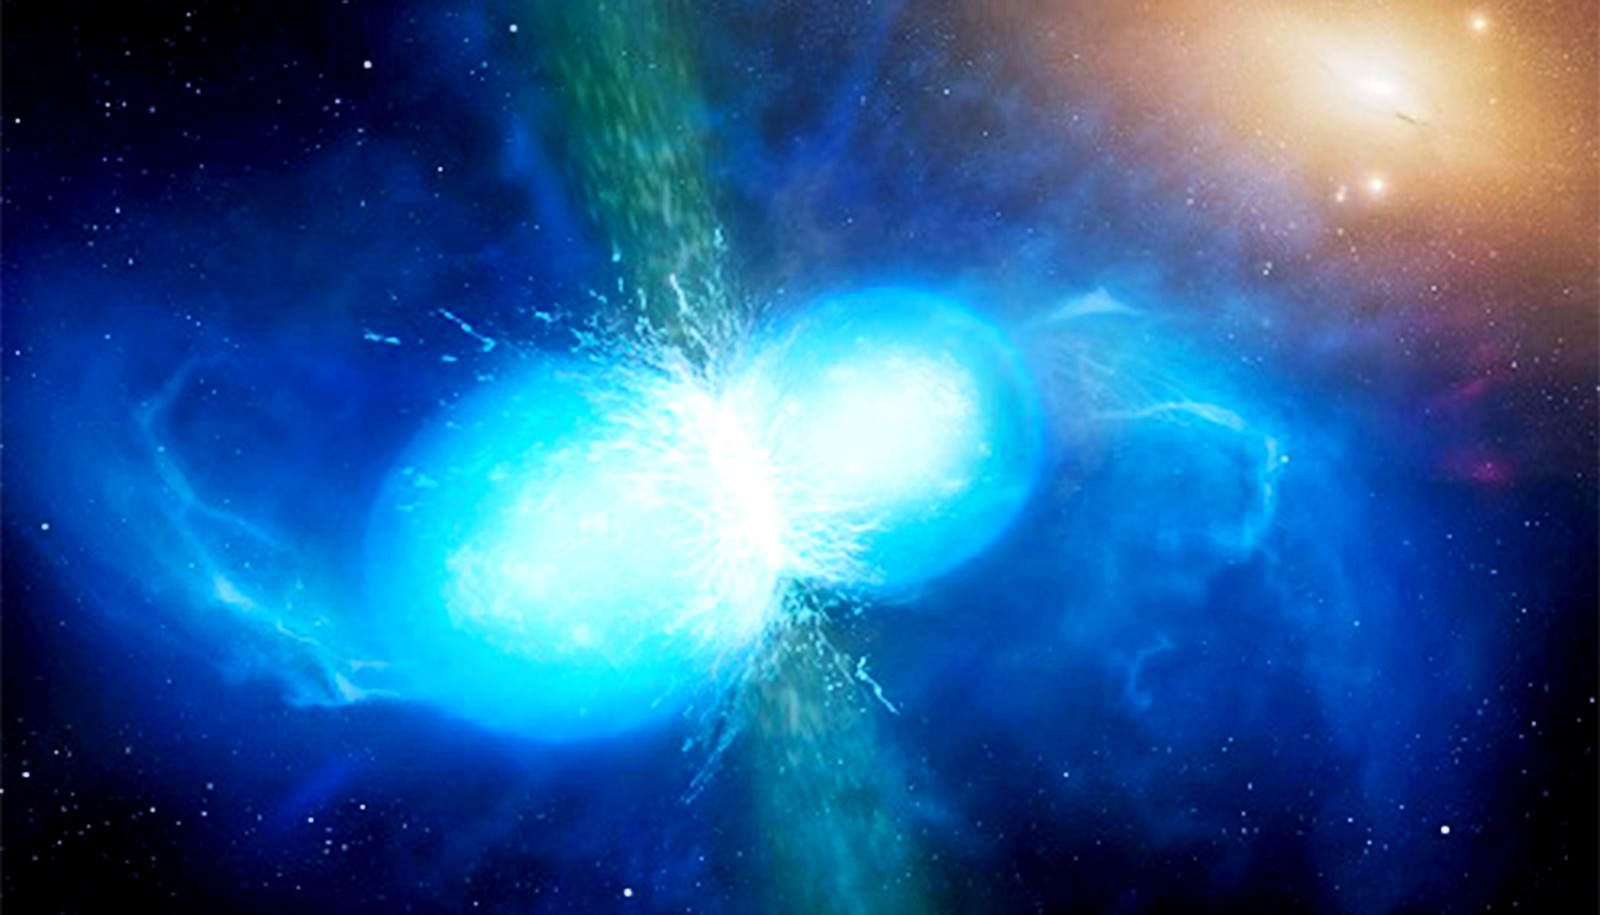 Two blue-looking stars smash into each other in space